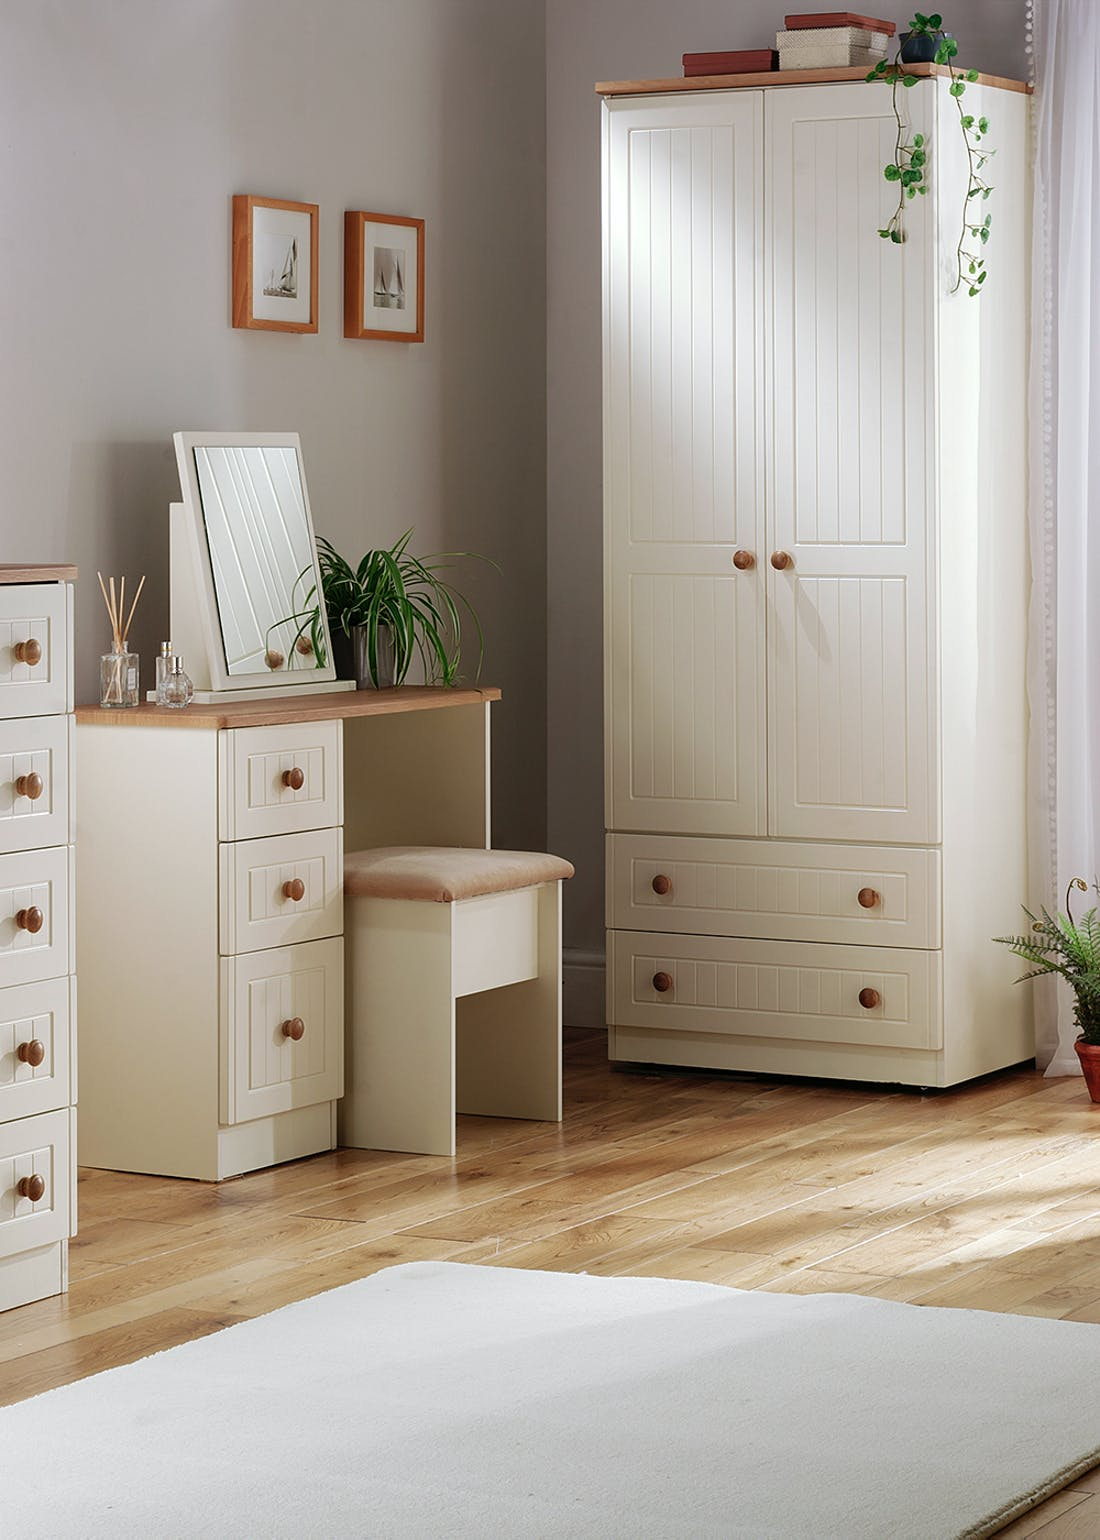 Swift Rimini 6 Drawer Midi Chest (78.8cm x 112cm x 41.5cm)